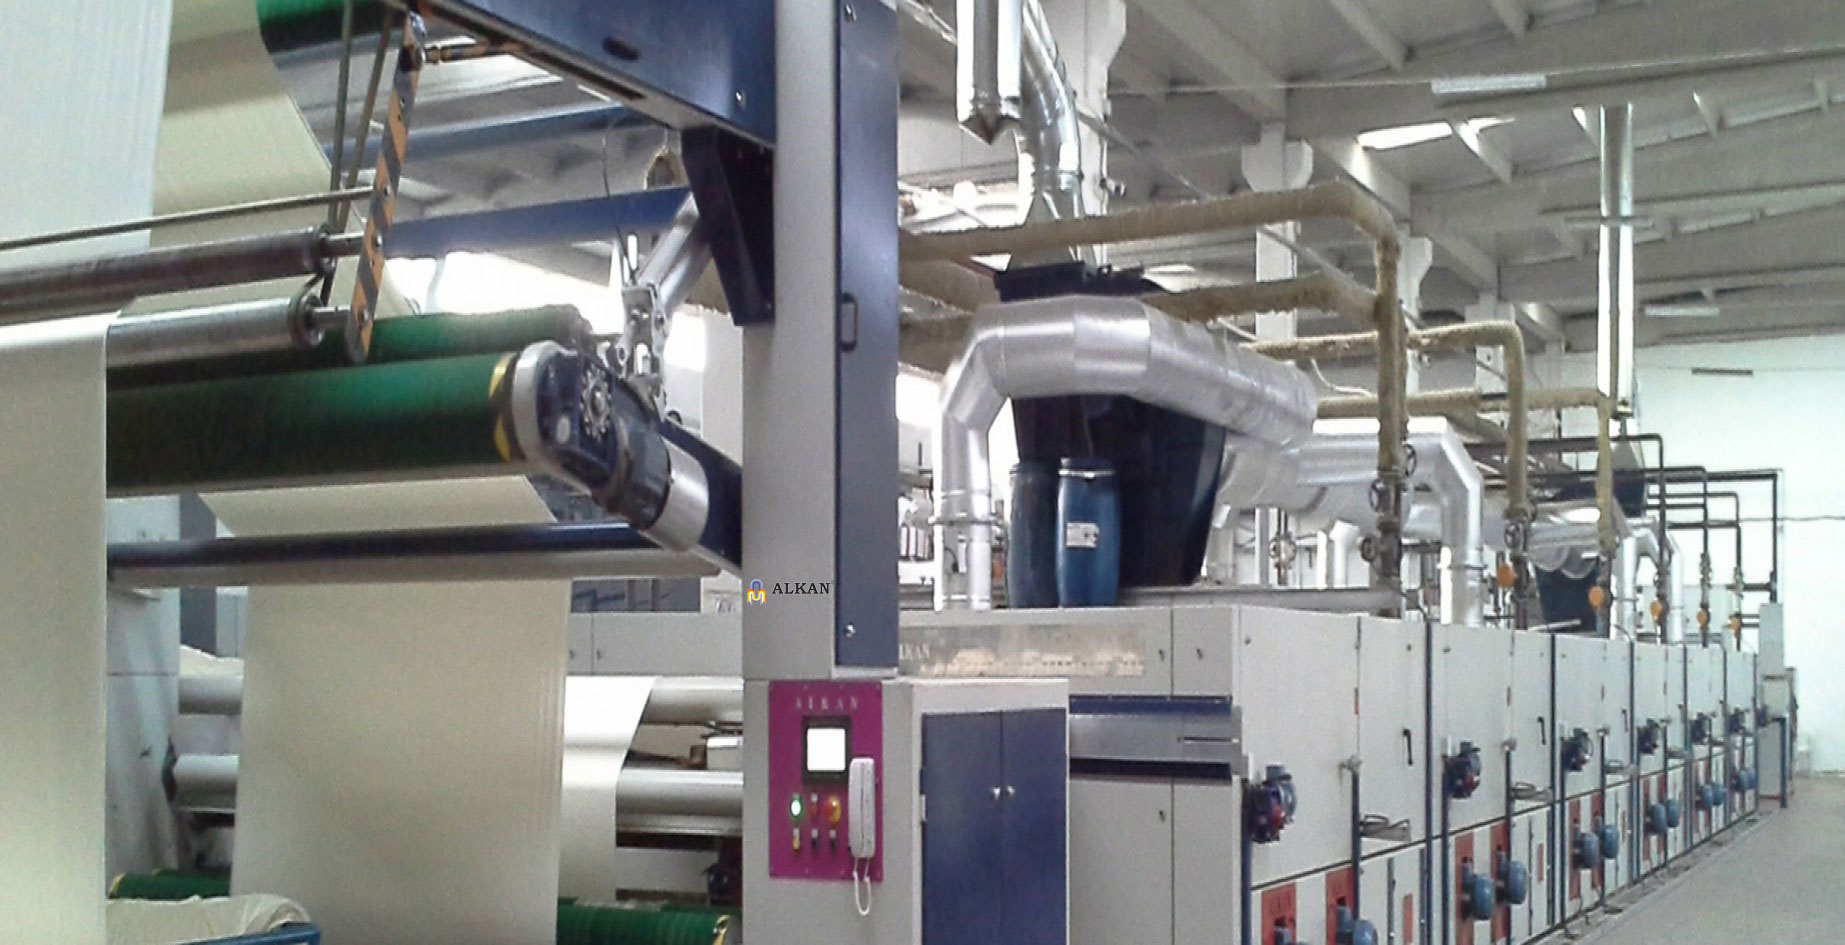 Alkan Stenter Machine for Knitting Fabrics, Turkey.